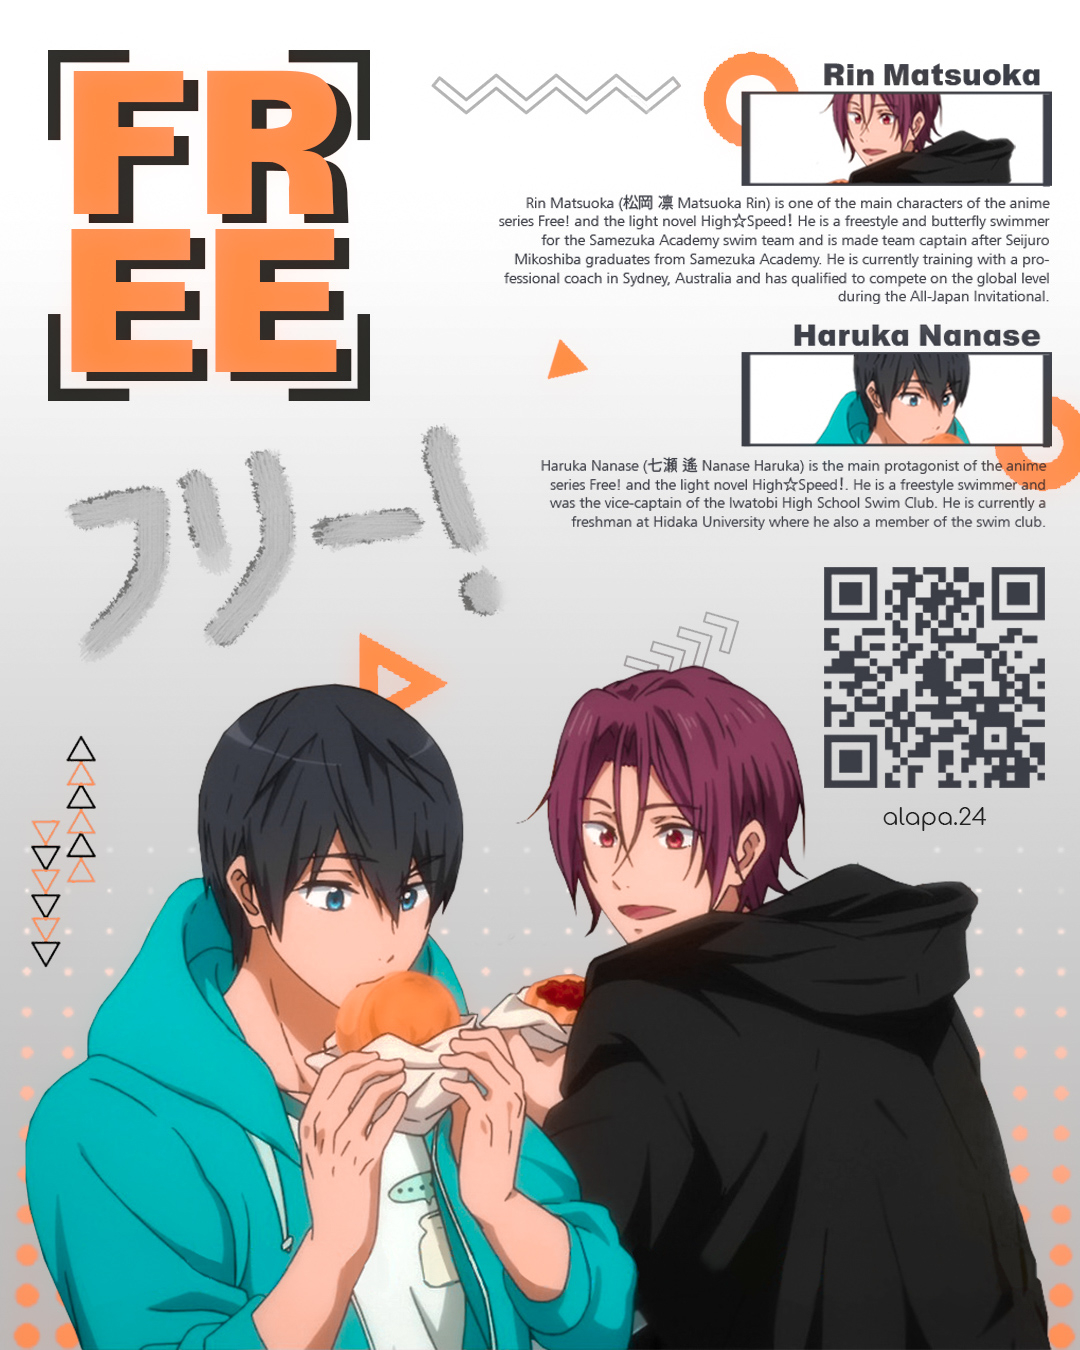 Free Haruka Nanase Rin Matsuoka By Alapa24 On Deviantart Rin specializes in butterfly and freestyle. free haruka nanase rin matsuoka by